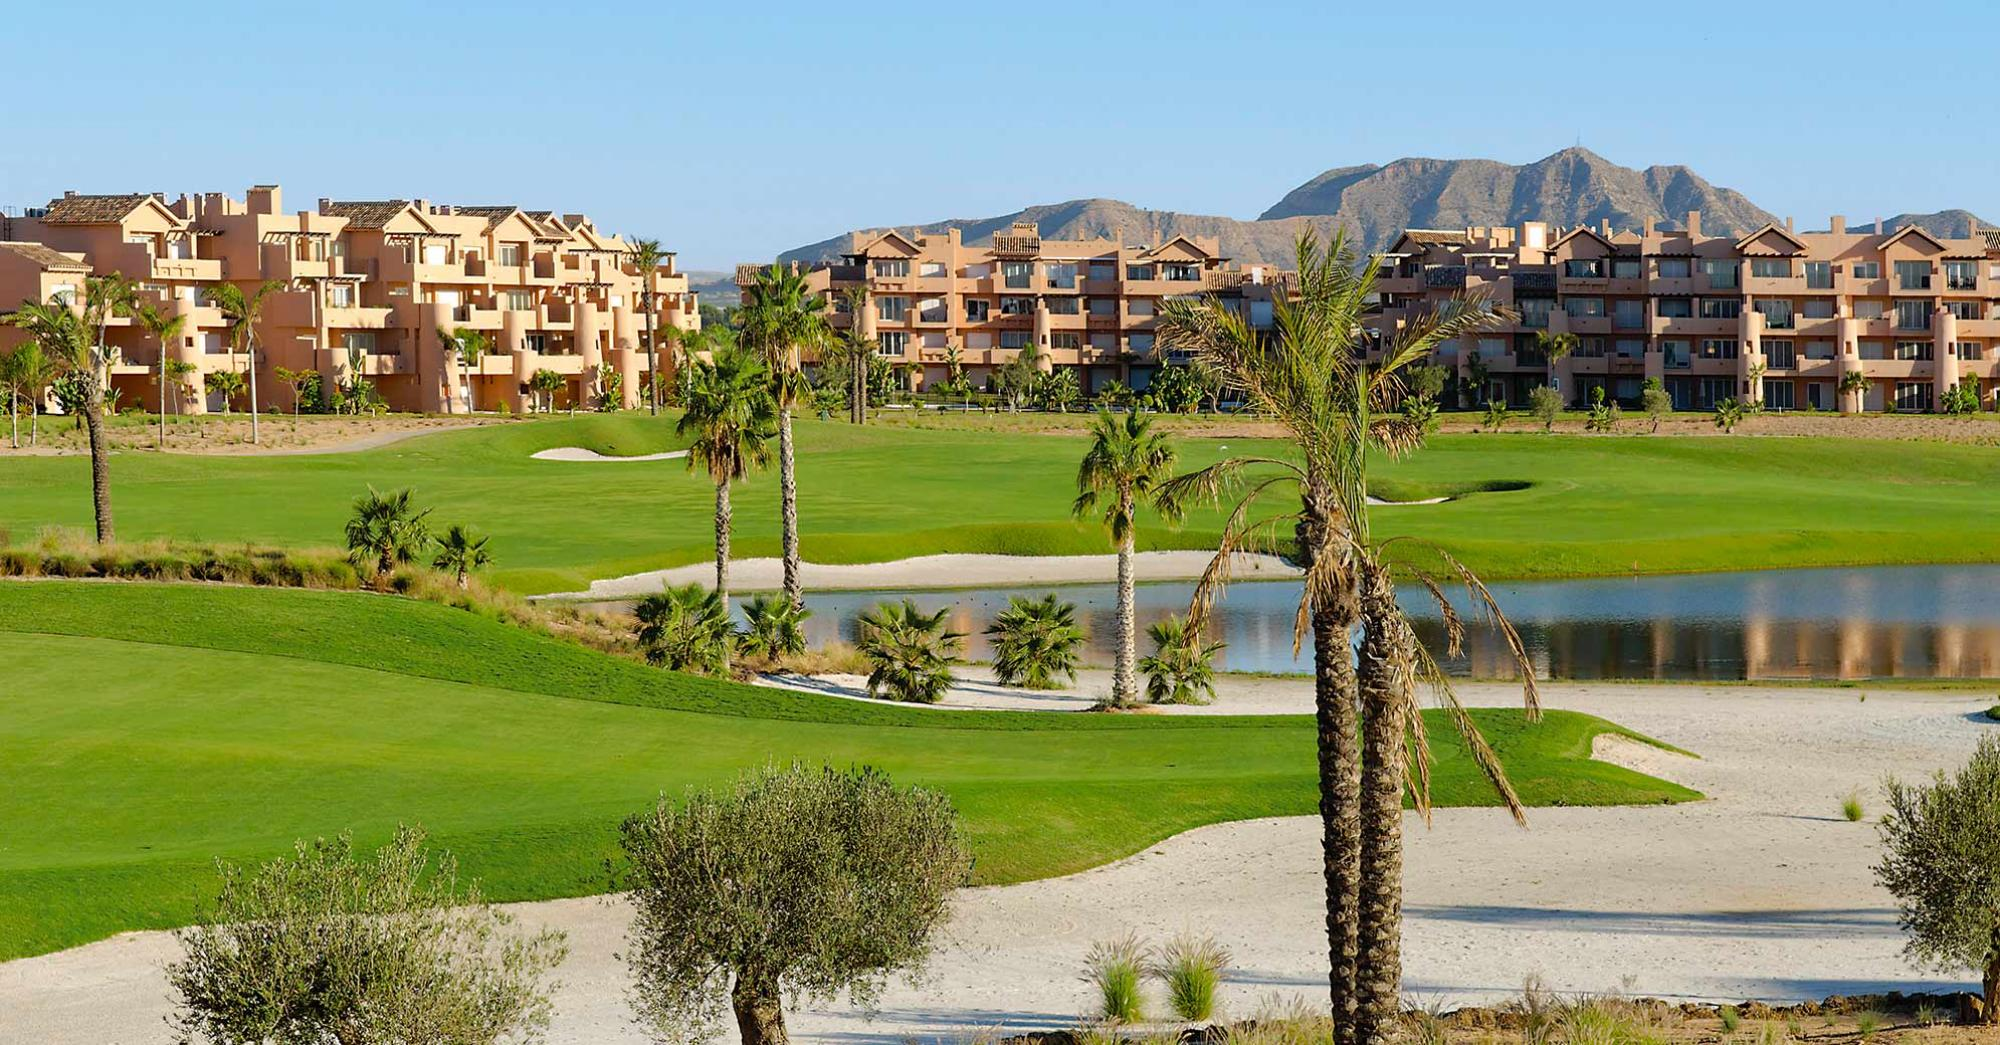 View Mar Menor Golf Course's lovely golf course in marvelous Costa Blanca.